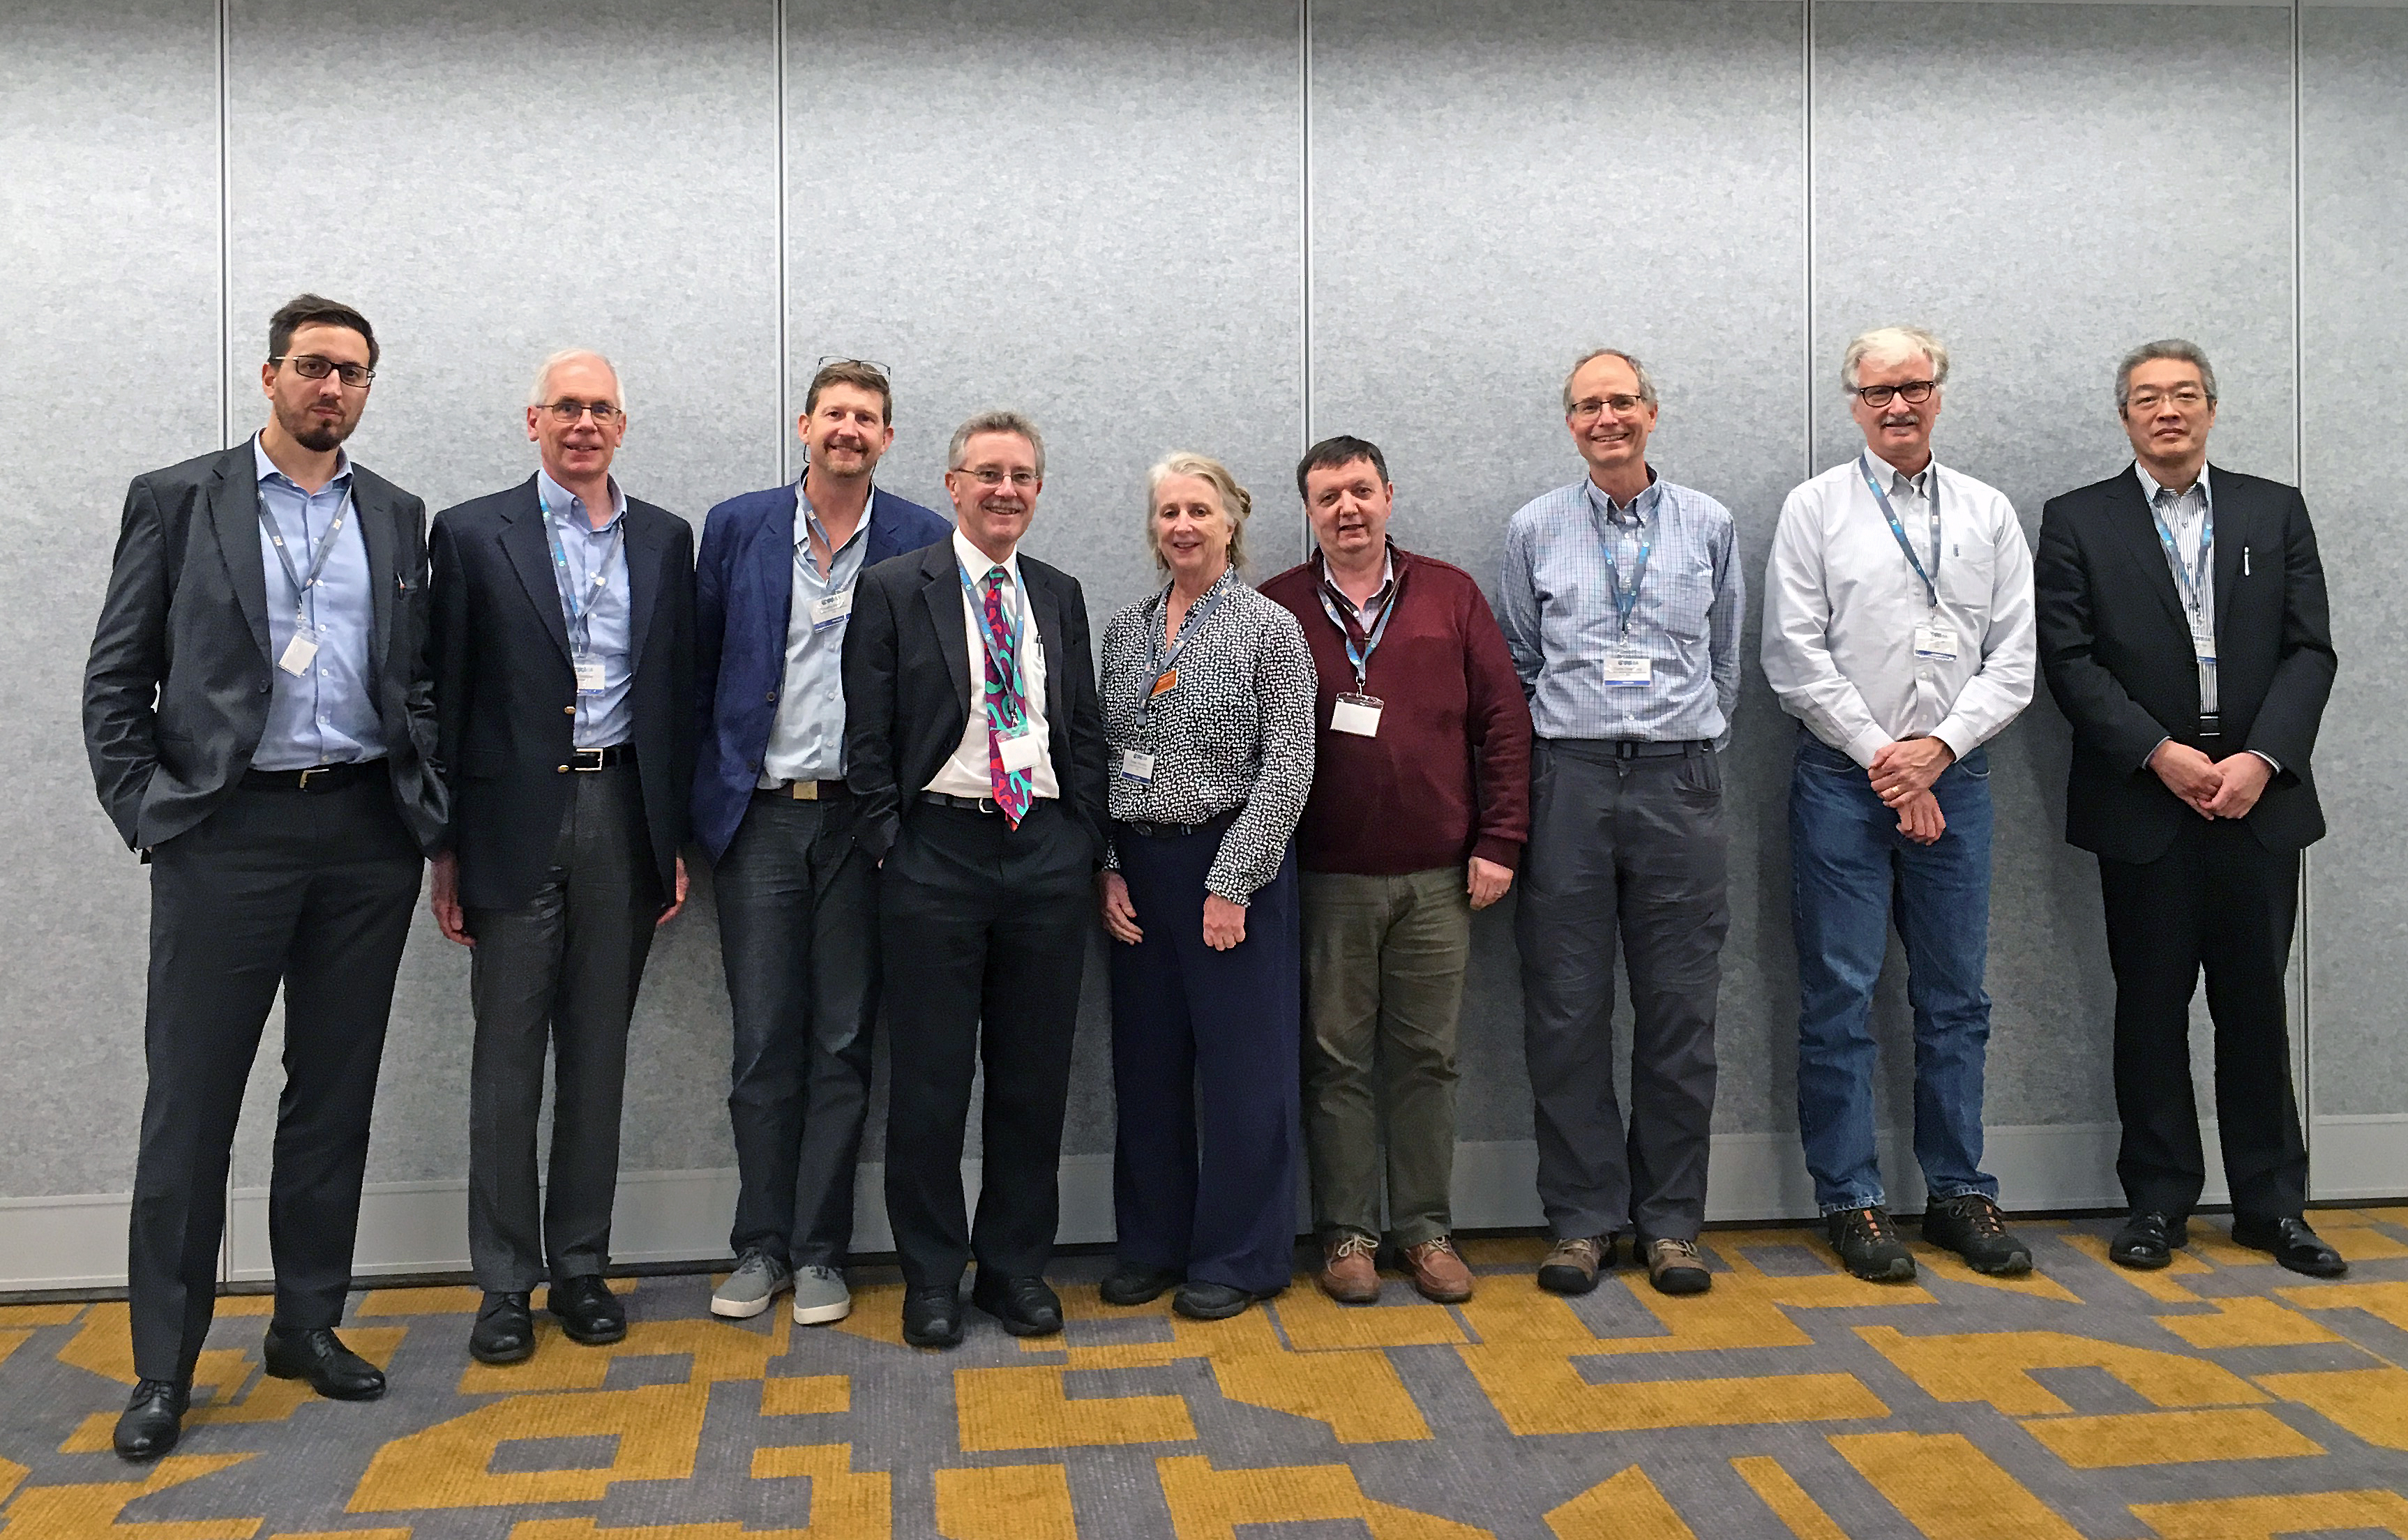 The GoMCarb advisory committee met at the annual GHGT-14 conference in Melbourne, Australia